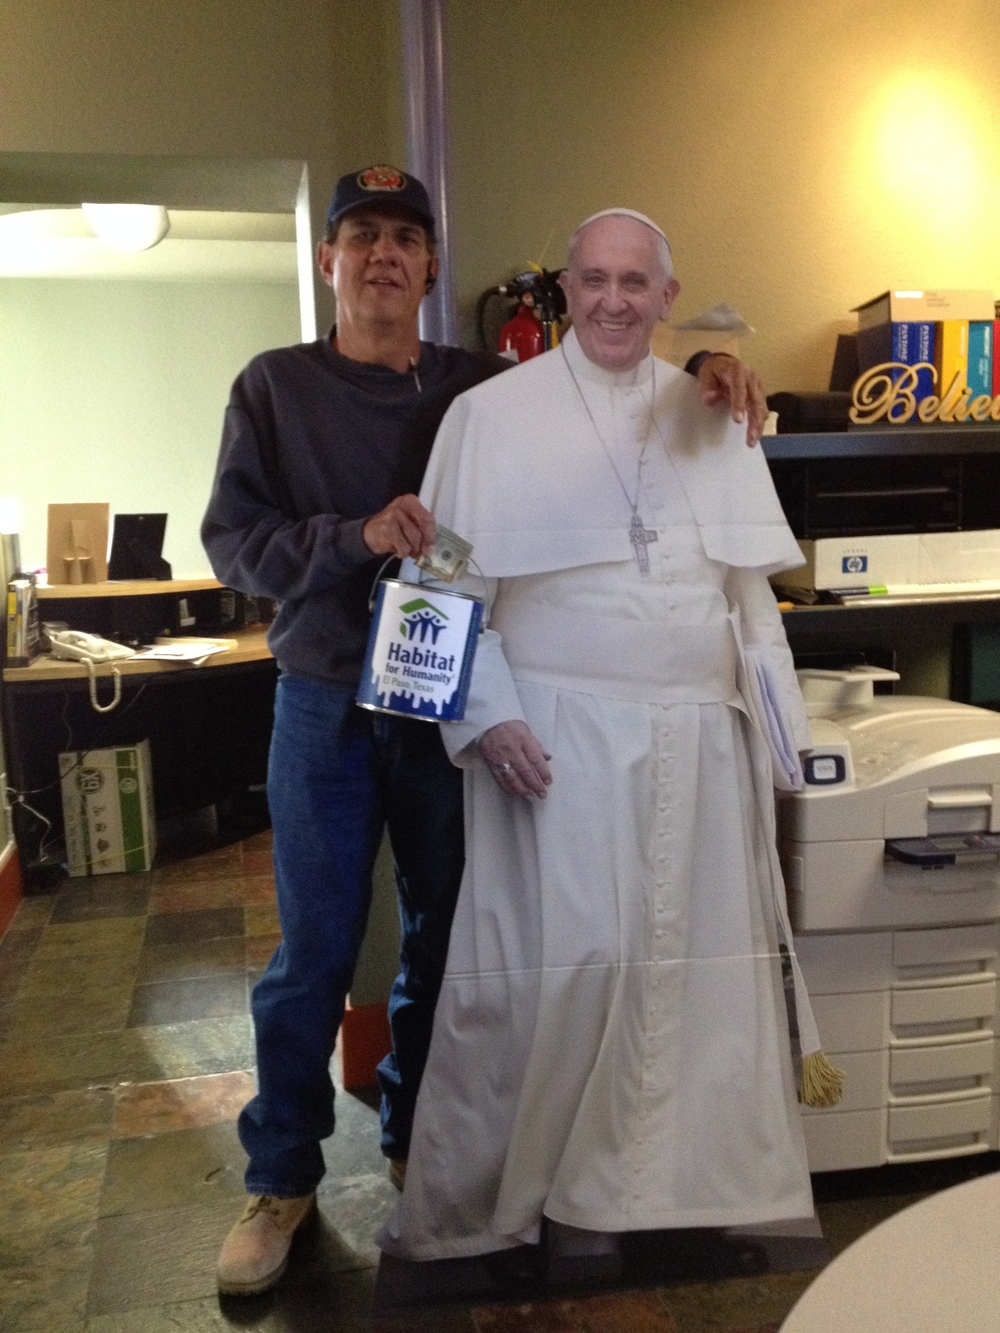 Construction Supervisor Ignacio Alarcon encouraging match donations to the Pope House.